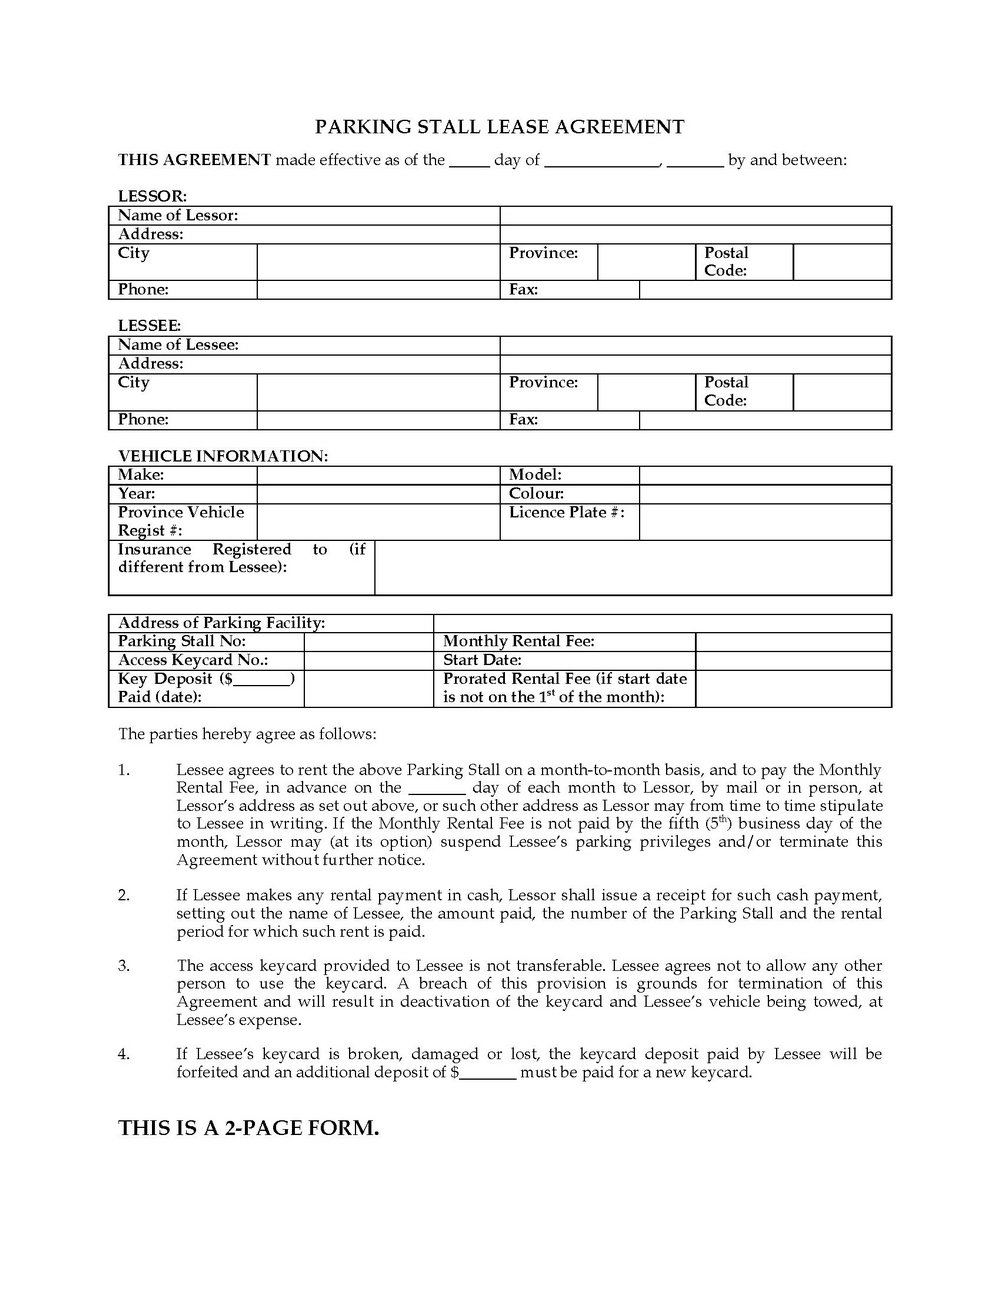 Standard Form Of Store Lease New York 2 94 A